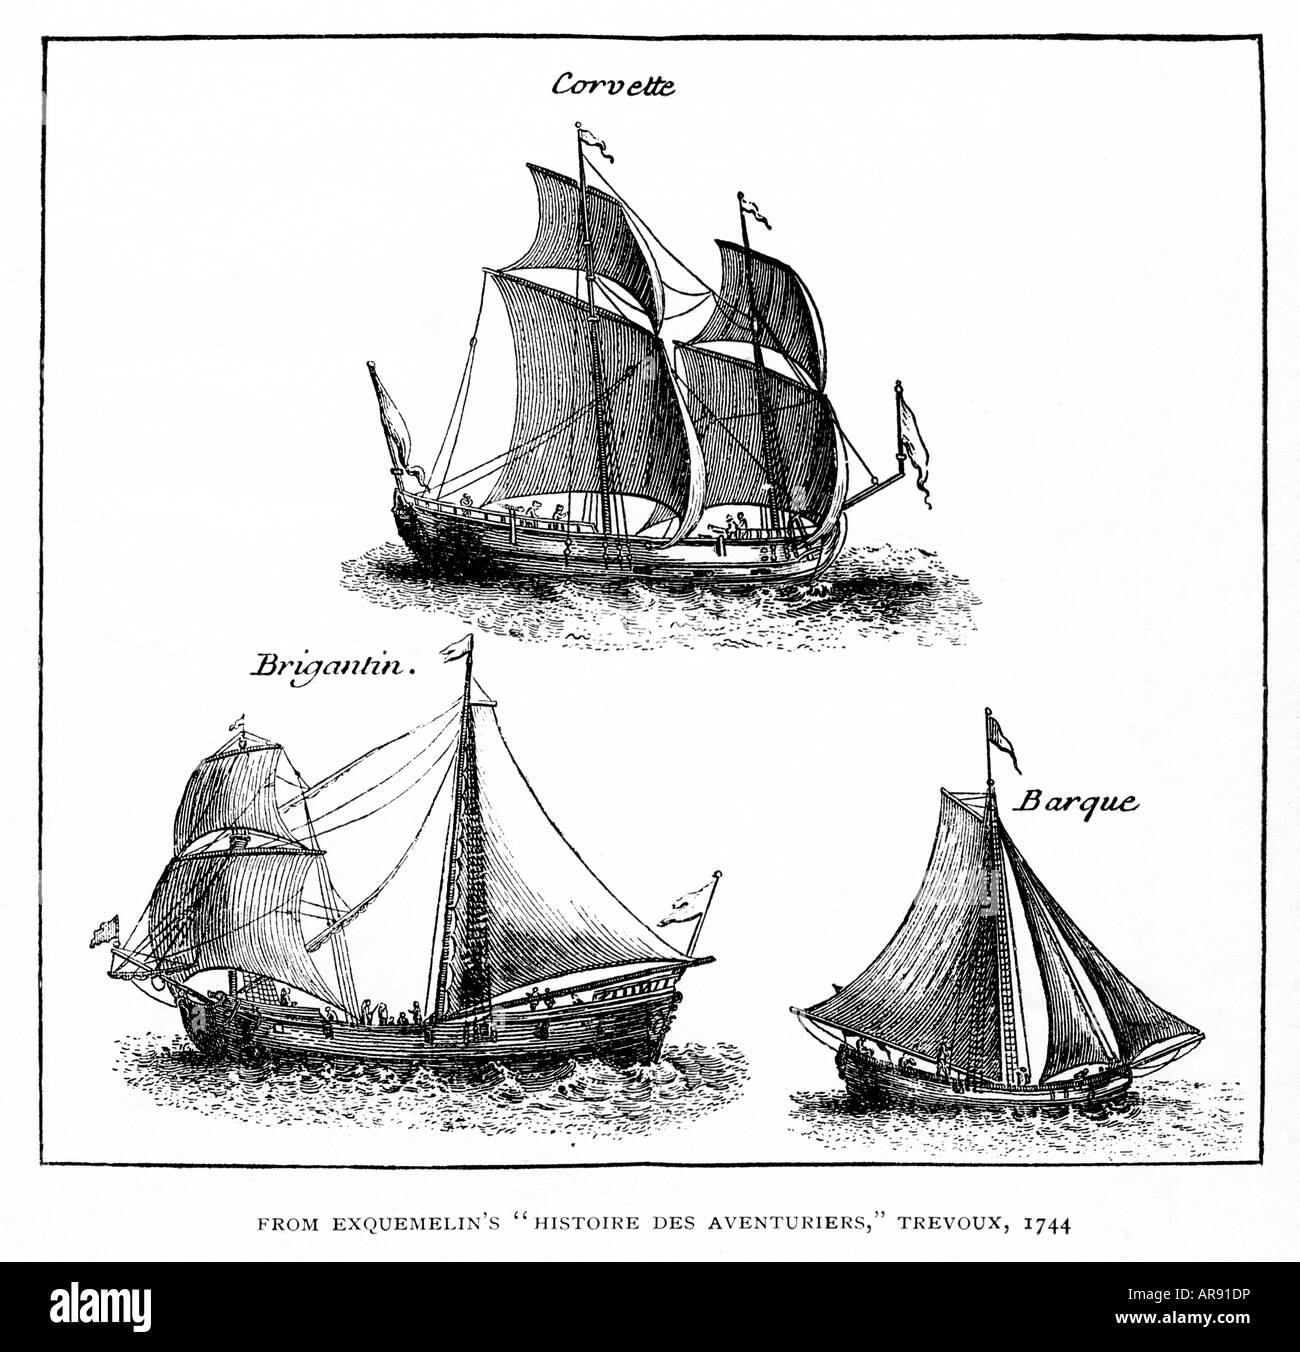 Buccaneer Ships 1700 engraving by Exquemelin of the ships used to prey upon the Spanish in the Caribbean - Stock Image